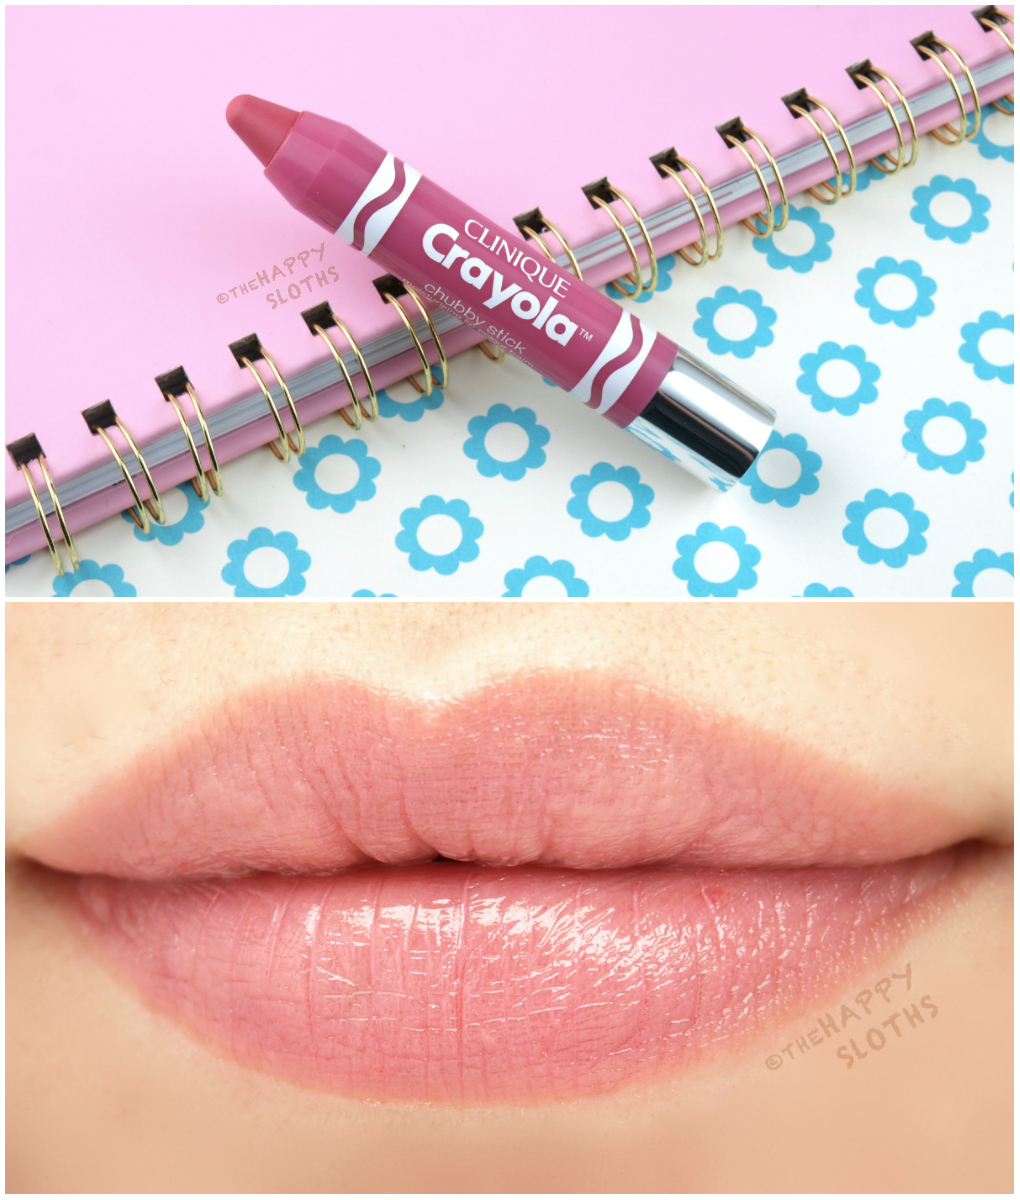 Clinique Crayola Chubby Stick Pink Sherbert: Review and Swatches